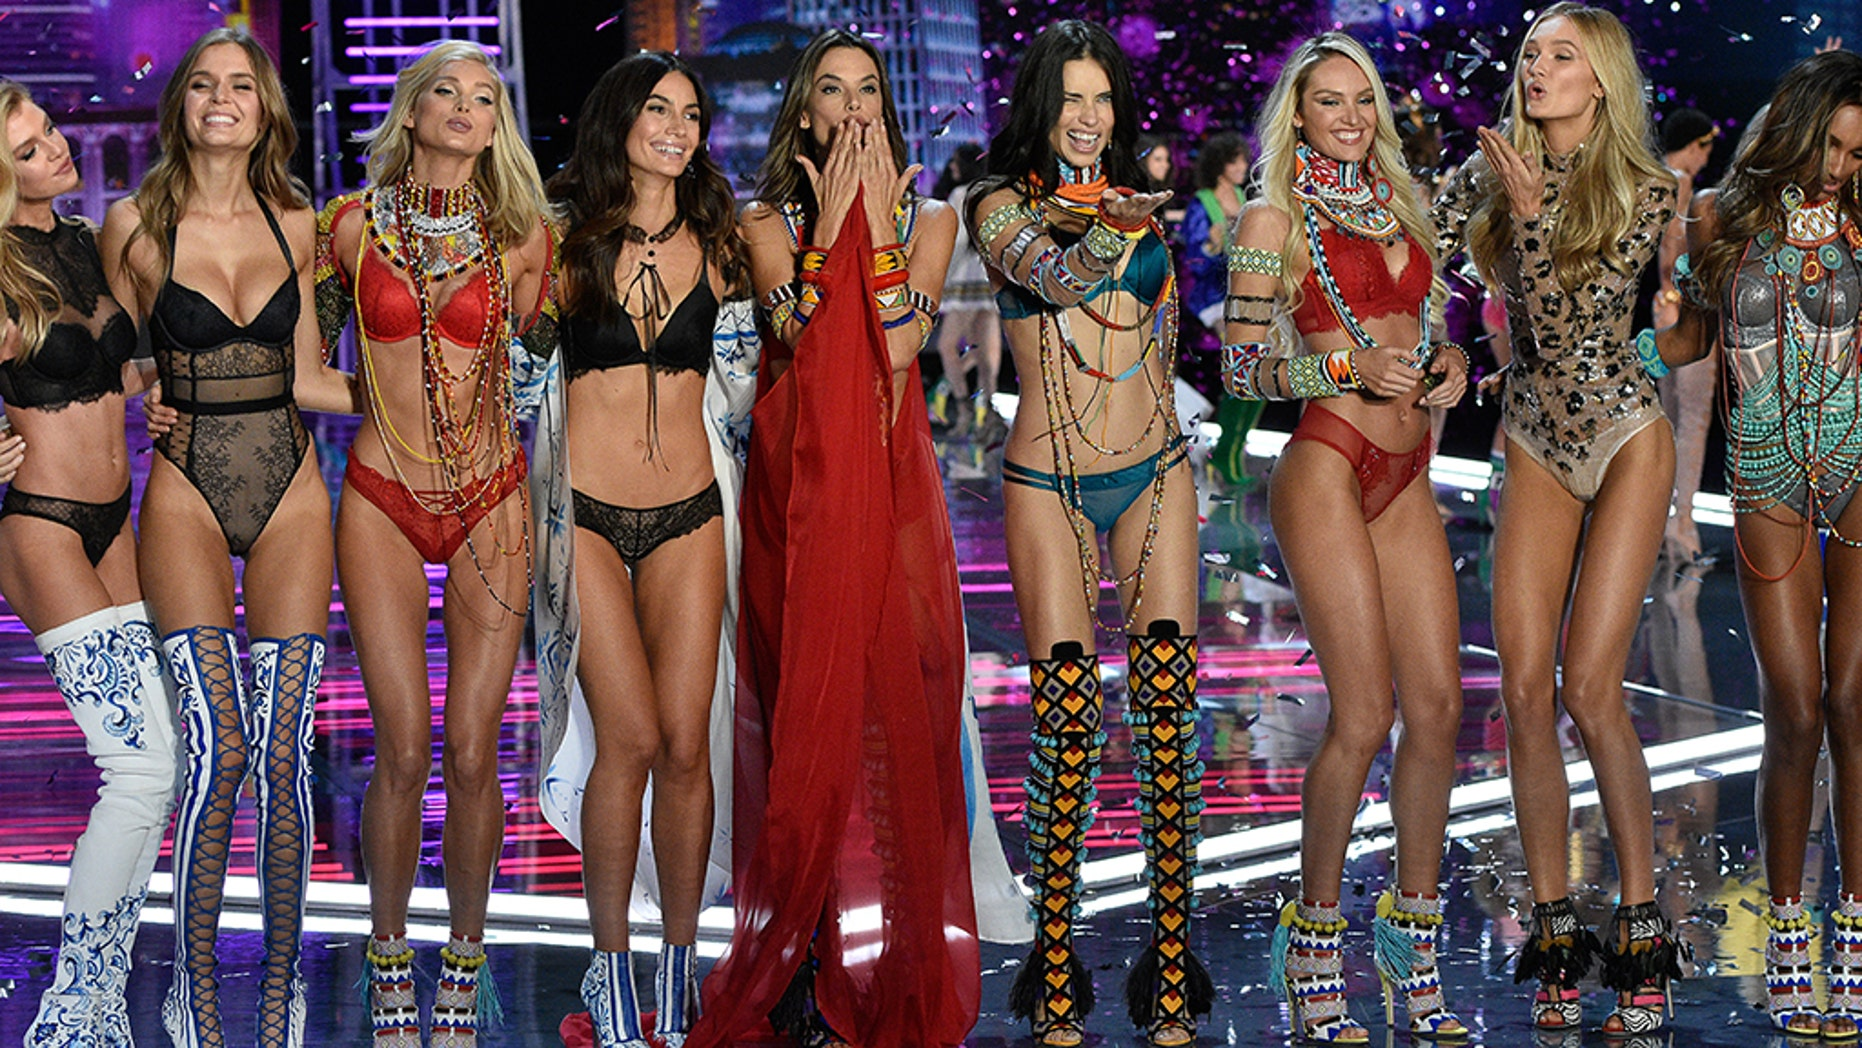 Victoria's Secret will soon holds its 2018 fashion show.